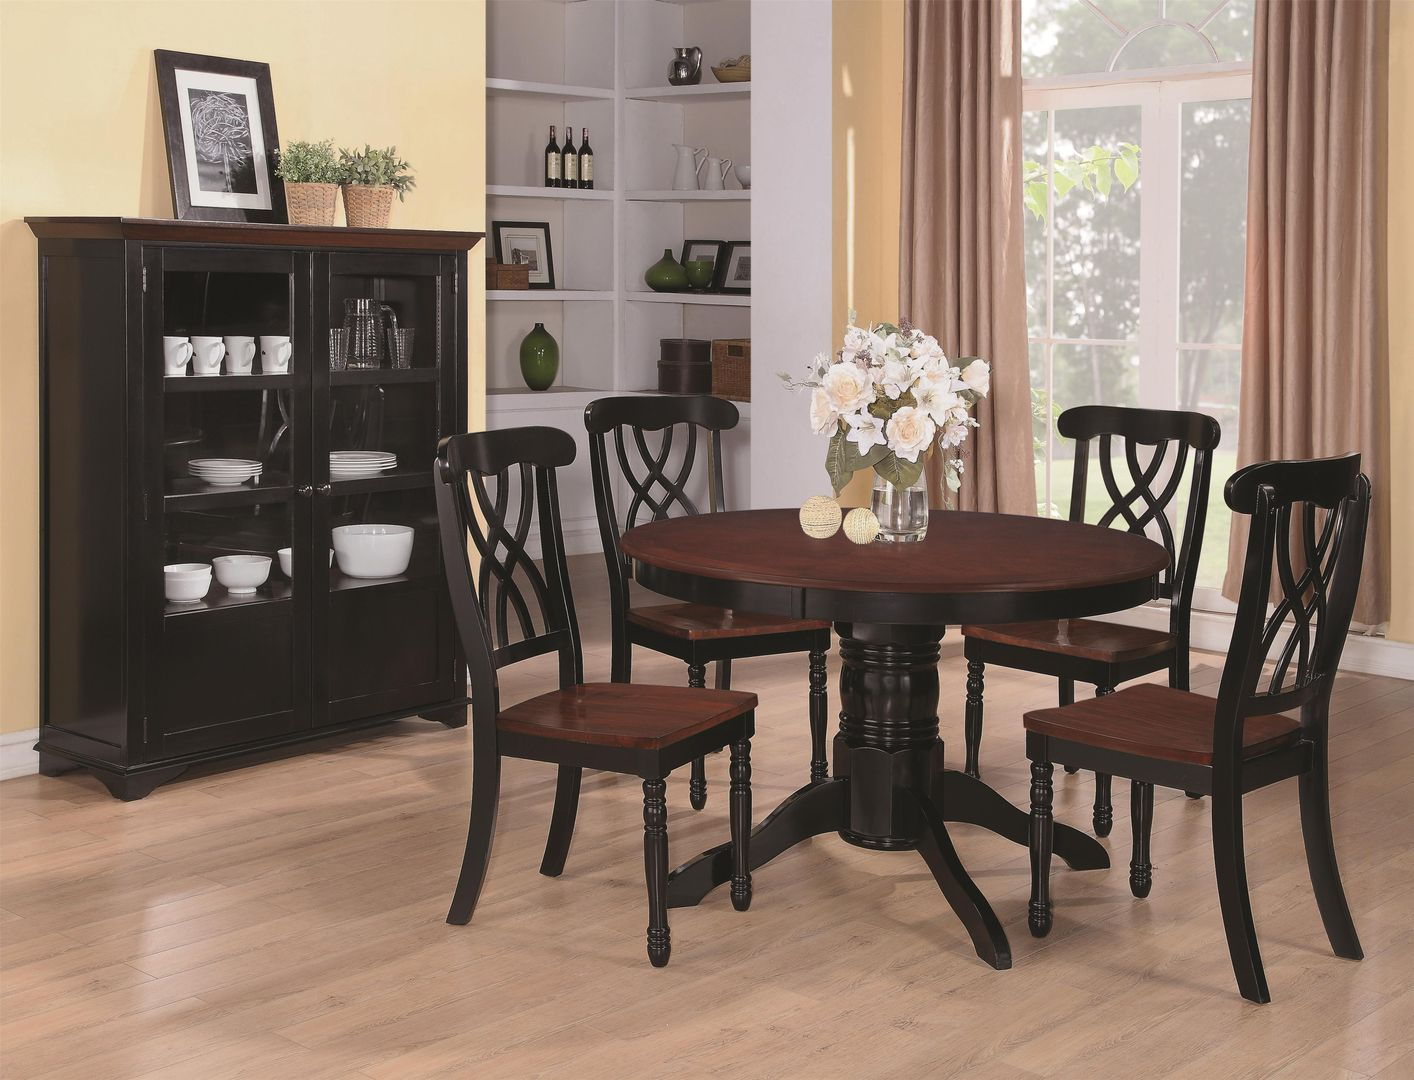 Merveilleux Addison Black And Cherry Wood Dining Table Set